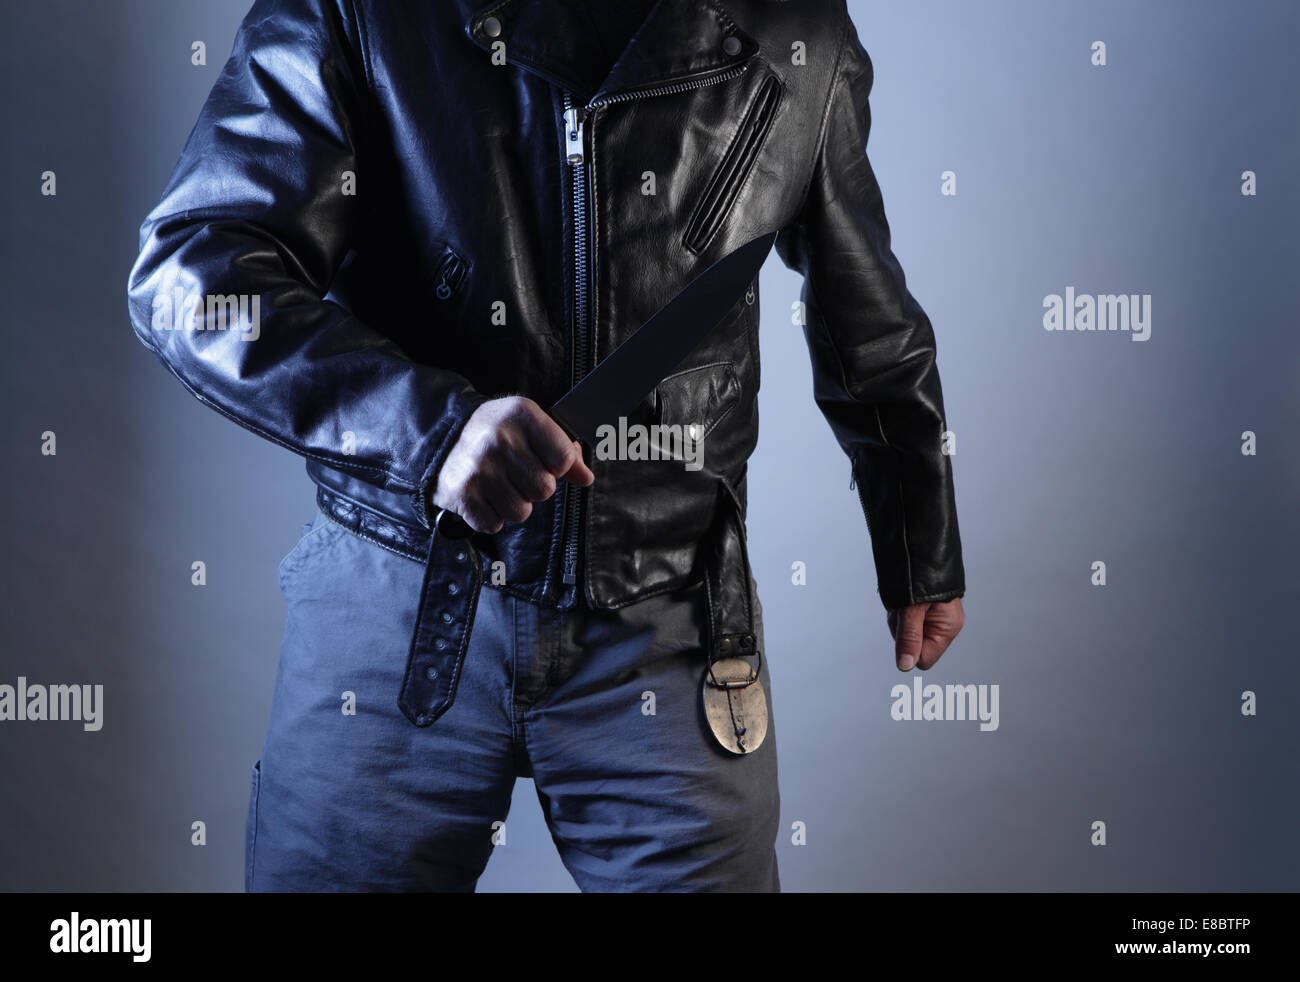 Male threatening violence with fists and knife torso shown - Stock Image